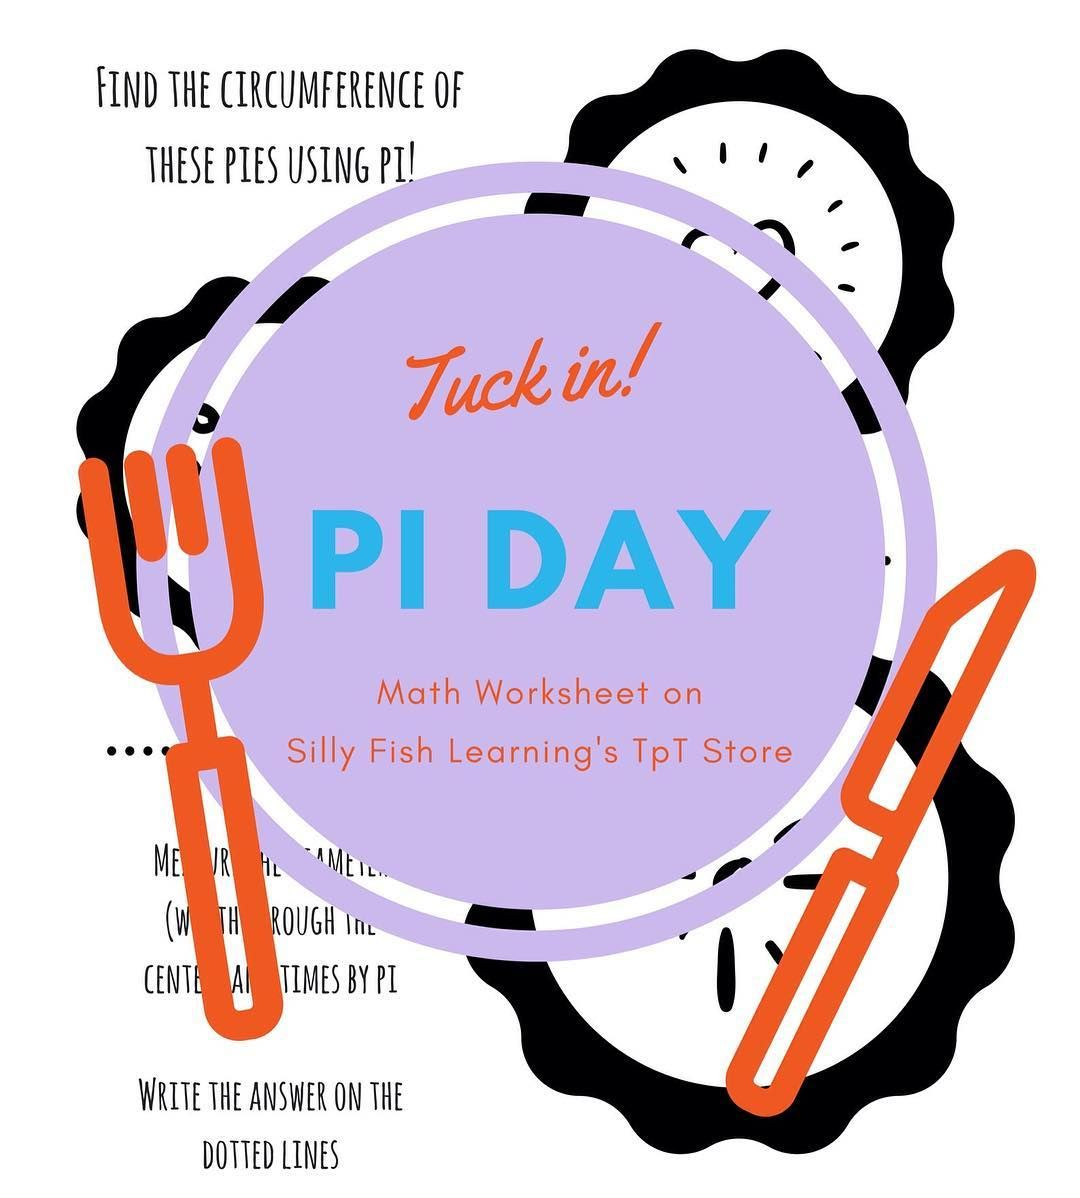 Guys Guys It S Piday And We Re Super Excited To Put Our First Math Worksheet On Our Tpt Store Check It Out Math Iteachmath Tea Math Worksheet Math Tpt [ 1198 x 1080 Pixel ]